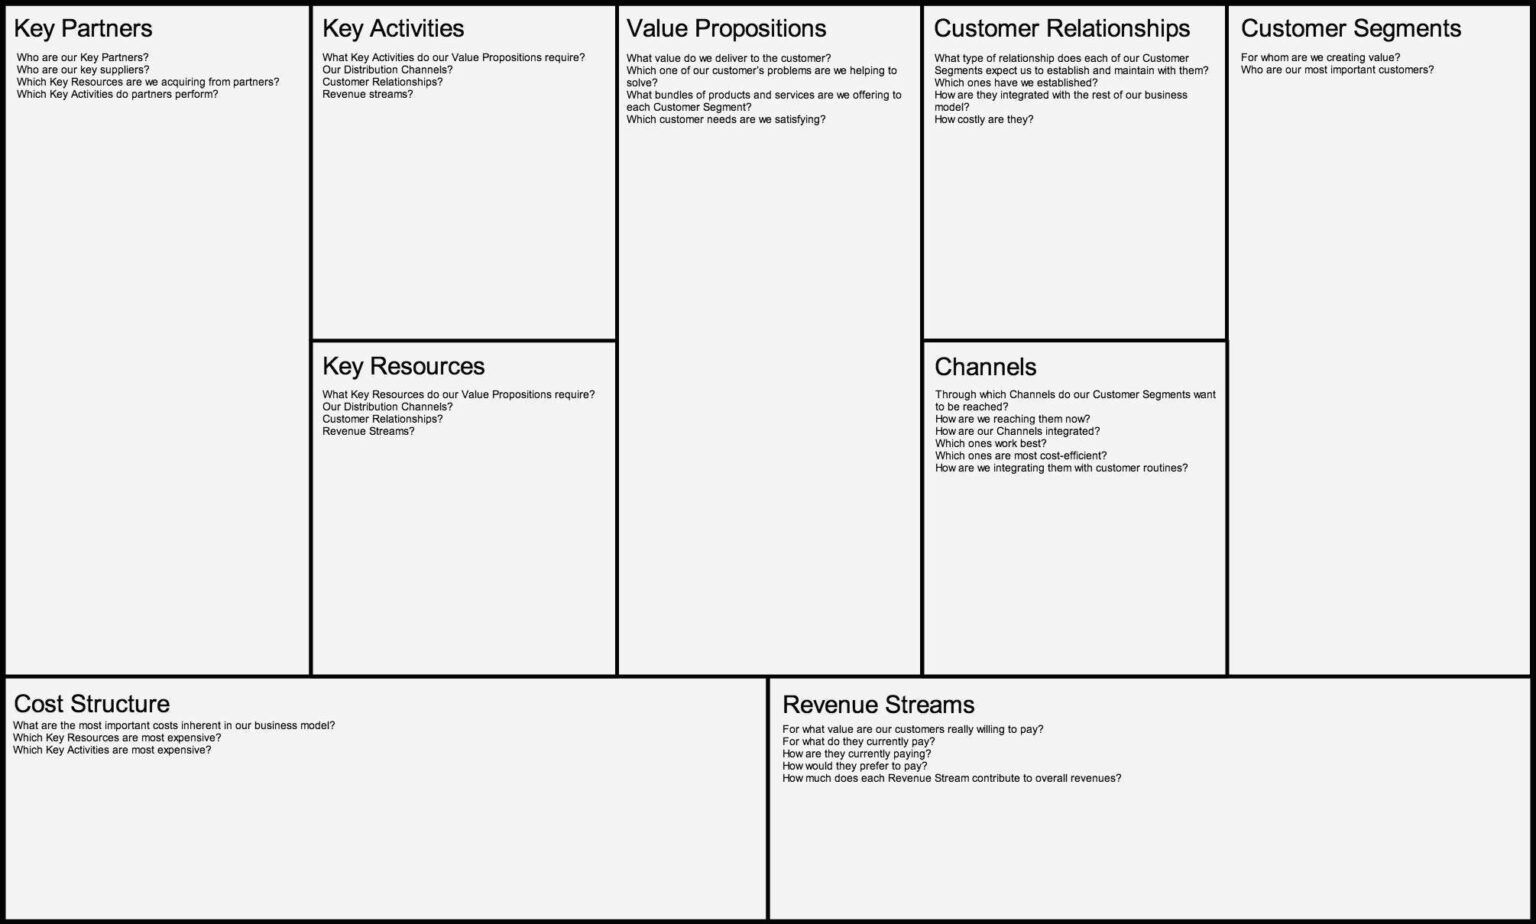 Business Model Canvas Template Word Caquetapositivo With Regard To Business Model Canvas Template Word In 2020 Business Model Canvas Business Canvas Word Template